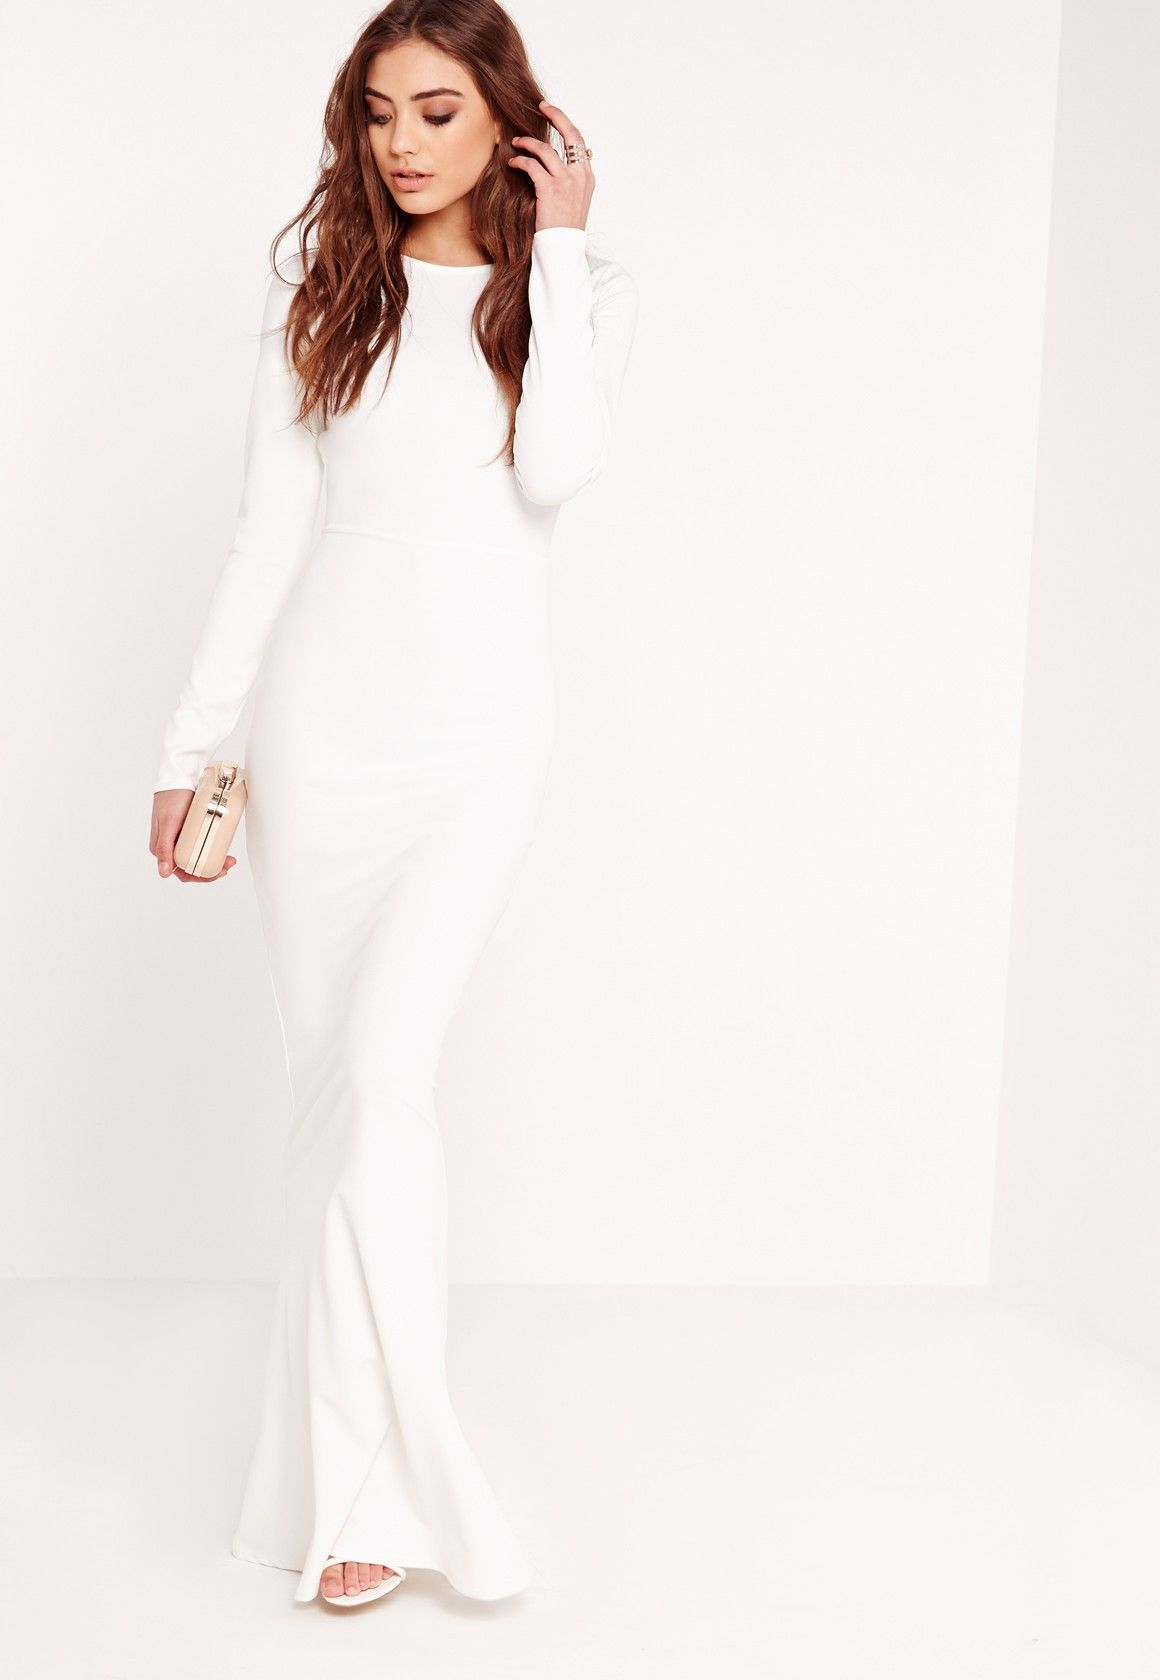 Missguided Long Sleeve Open Back Maxi Dress White Whiteness